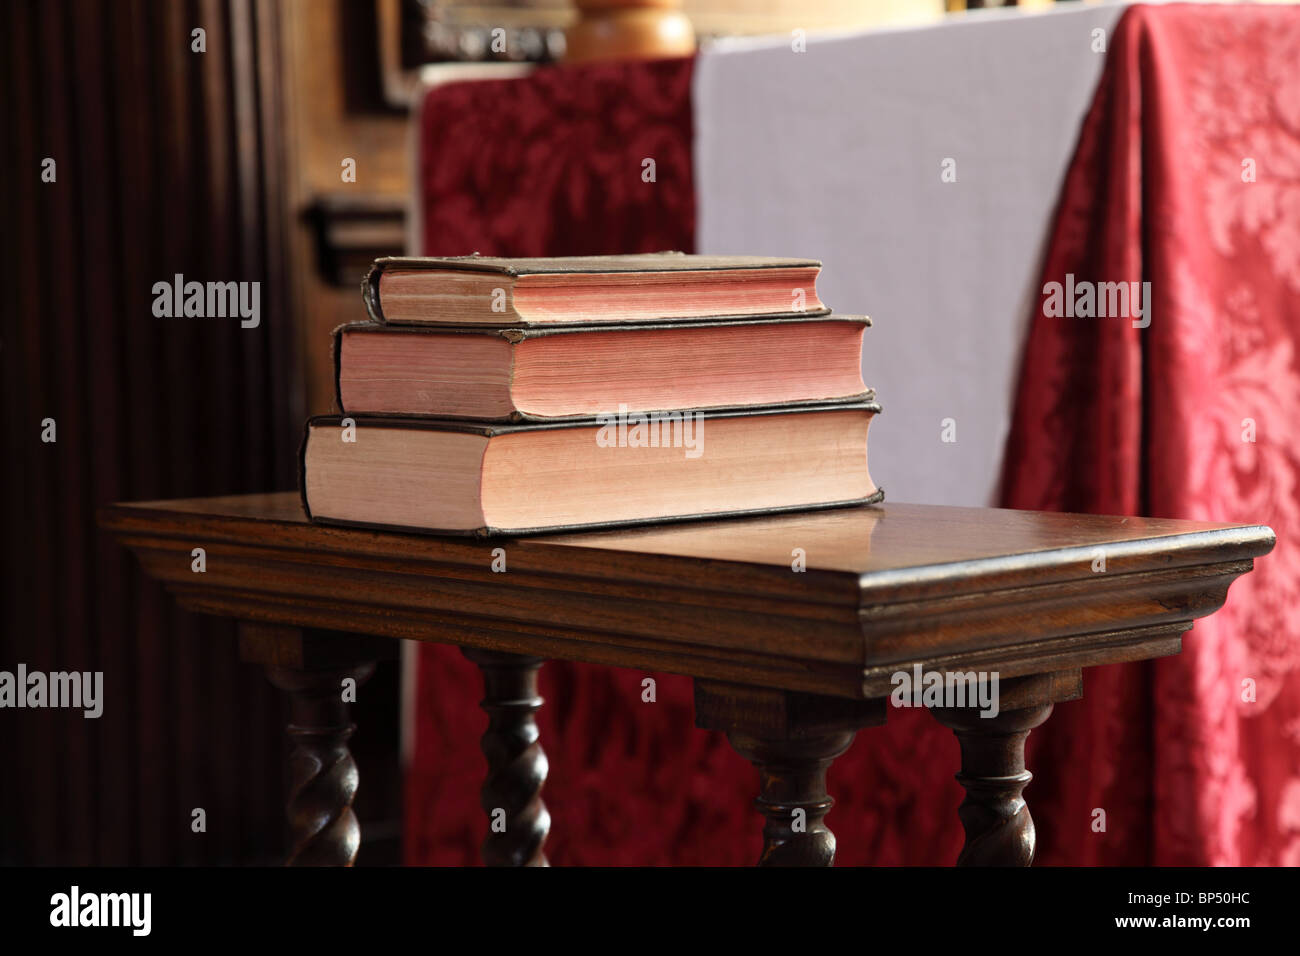 A stack of old books on the later of the Knights Templar Church, The Temple, City of London, EC4. - Stock Image